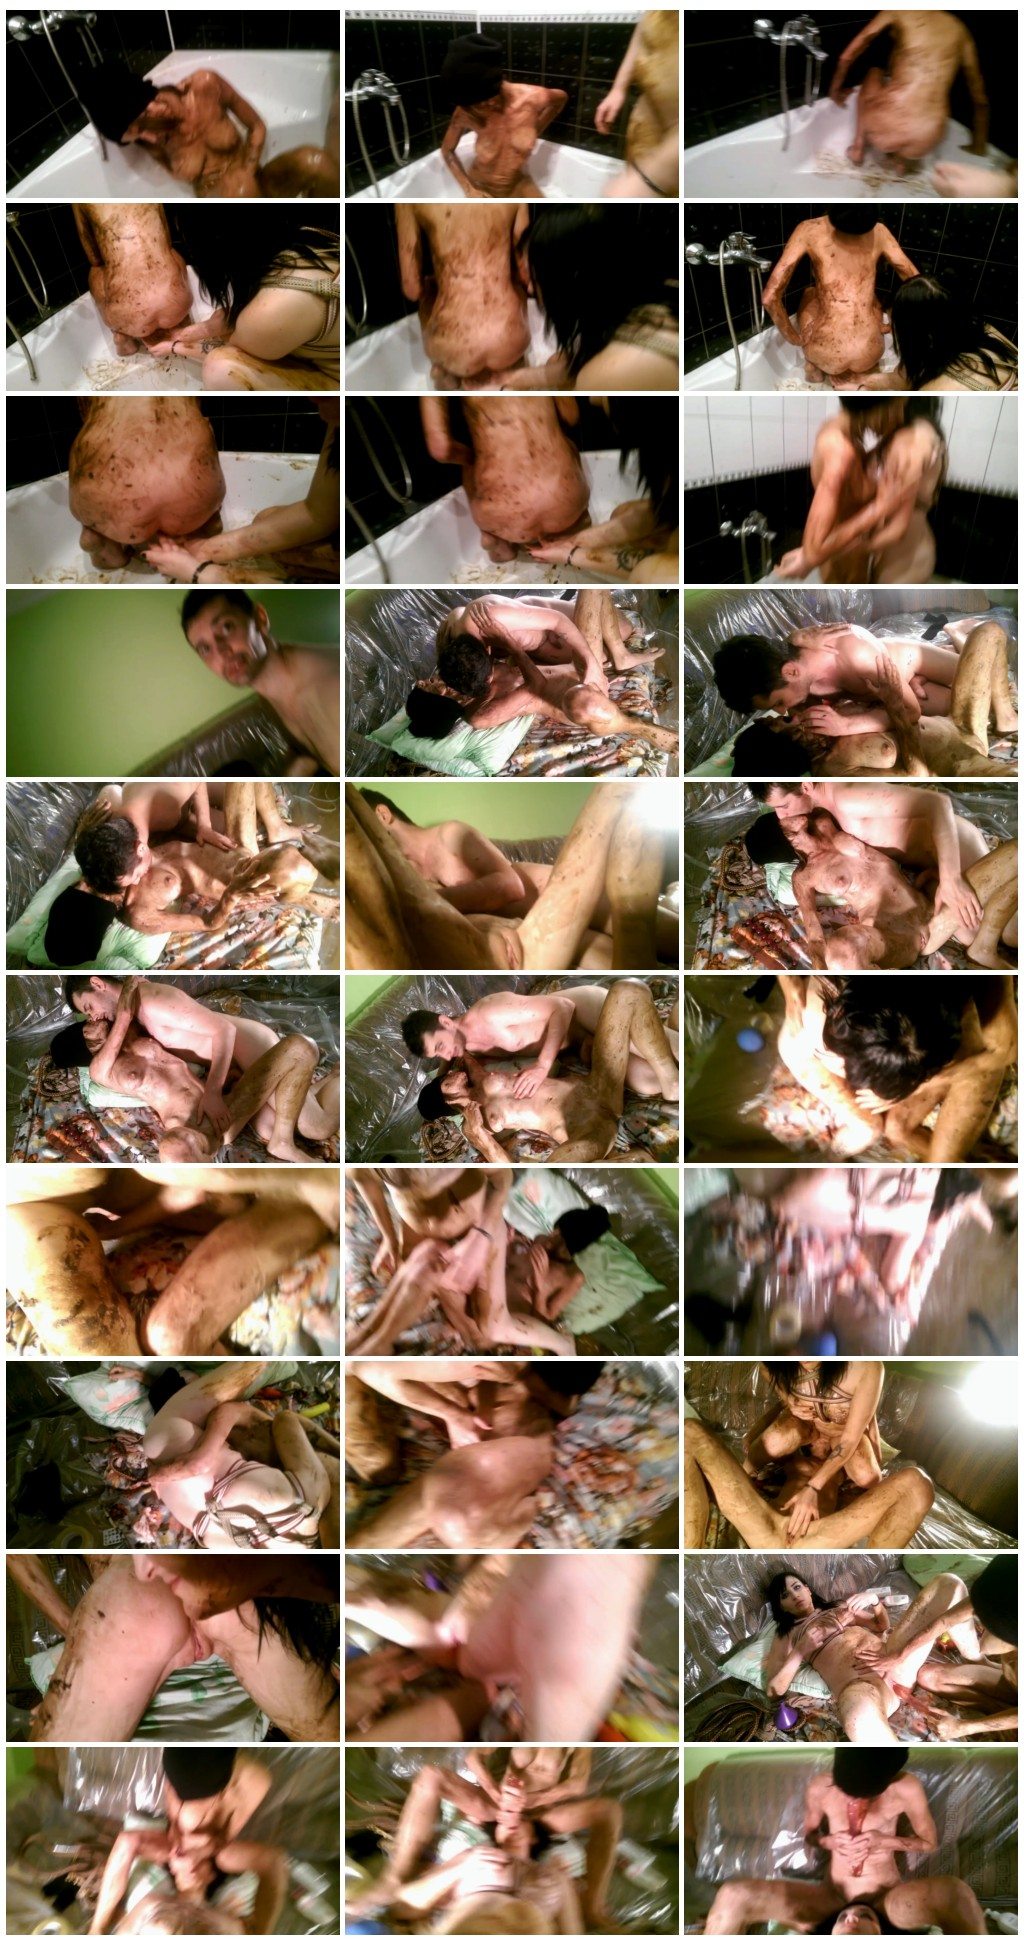 AstraCelestial Extreme Scat Orgy Part 3 of 6  thumb - AstraCelestial - Extreme Scat Orgy Part 3 of 6